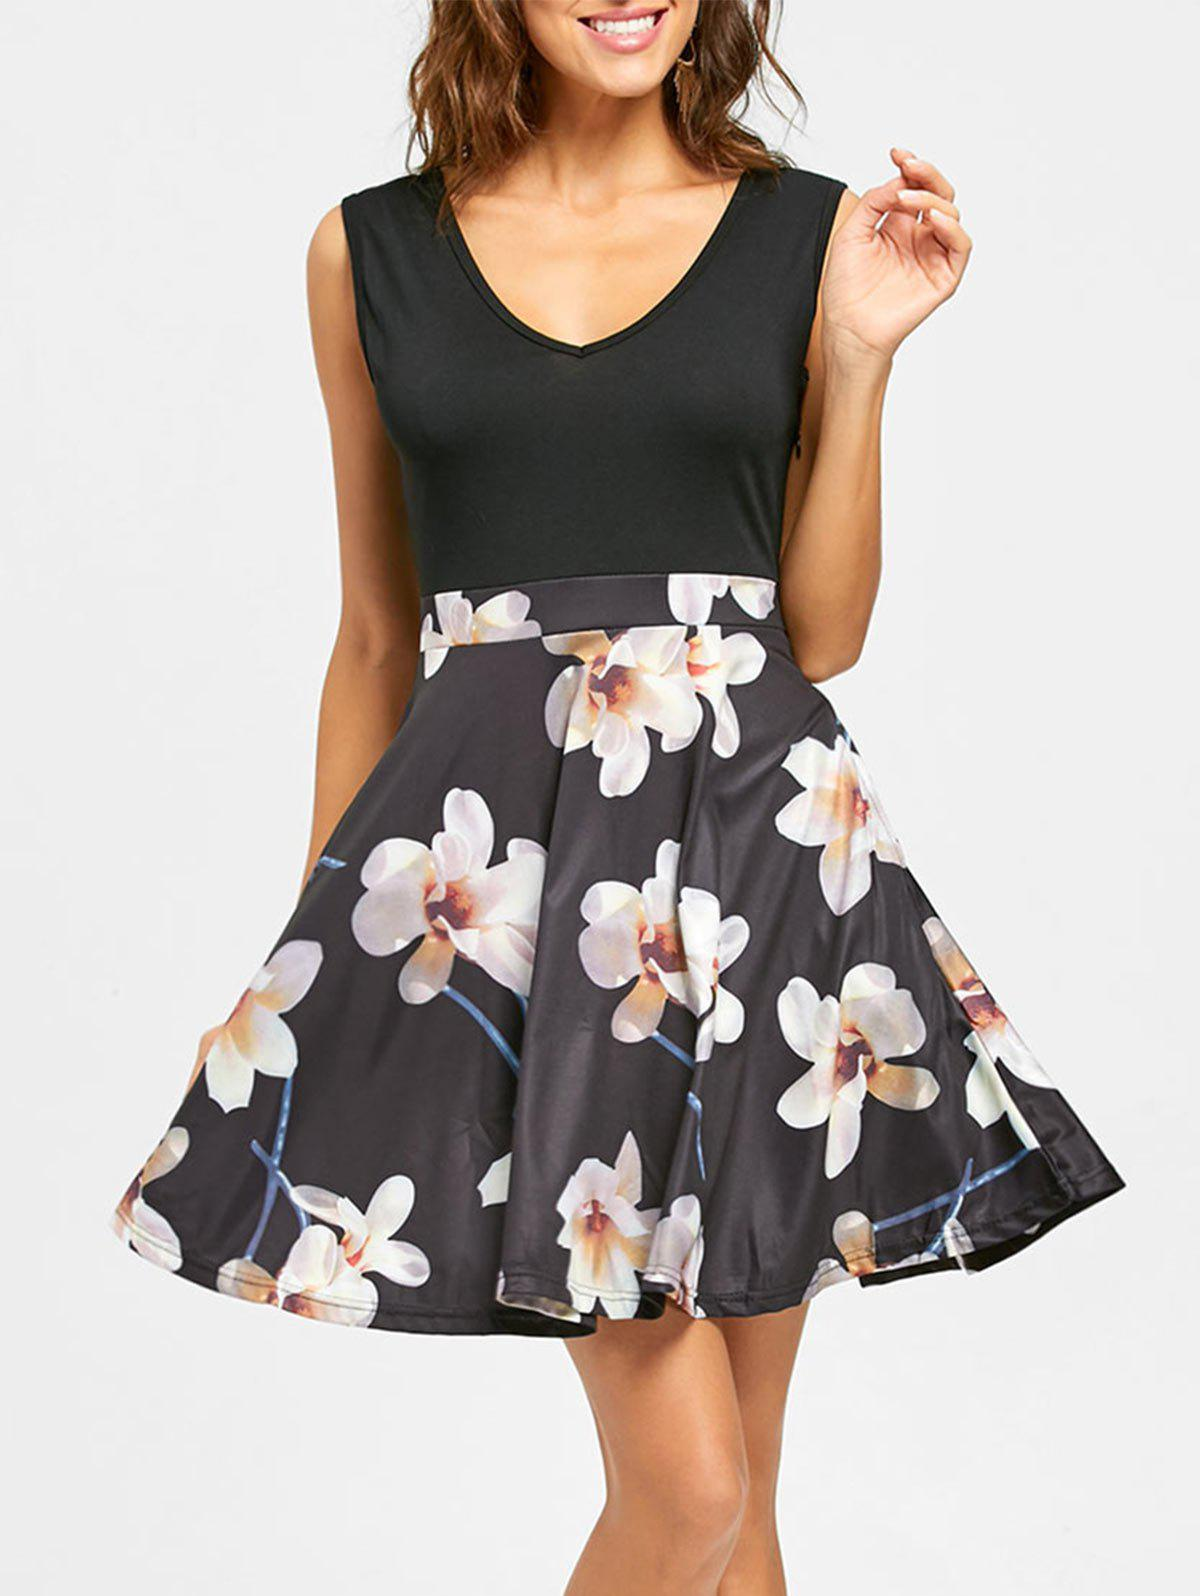 Floral Print V Neck Sleeveless Mini Dress - BLACK S